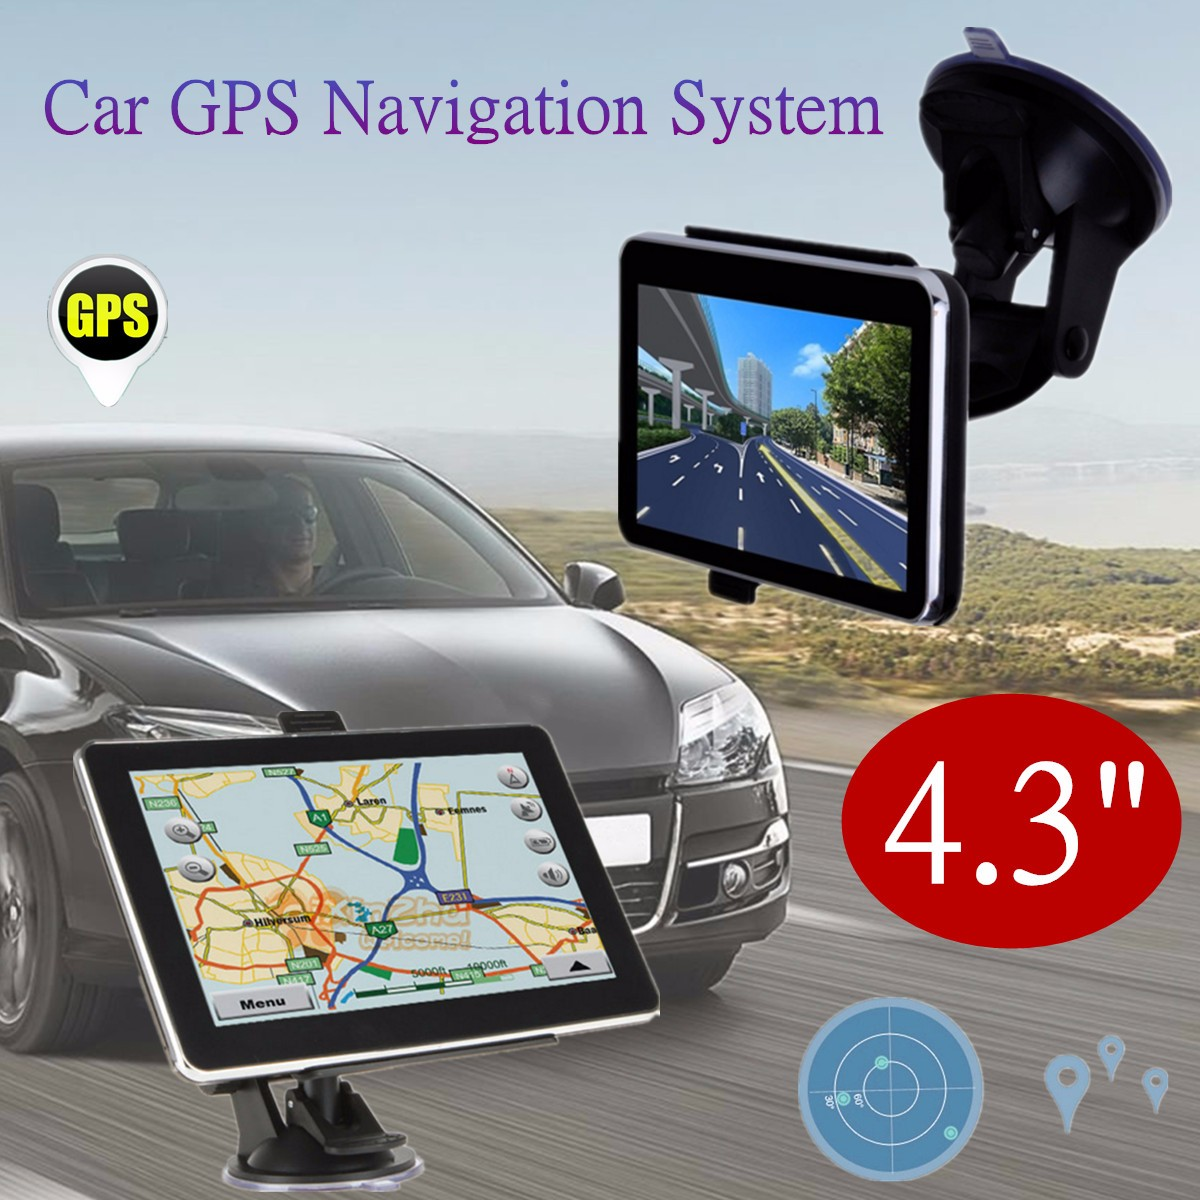 4.3 inch Car GPS Navigation 8GB MP3/MP4 Player Automobile Navigator FM Radio Europe & UK Free Map Vehicle gps Truck Map Sat Nav junsun 7 inch hd car gps navigation bluetooth avin capacitive screen fm 8gb vehicle truck gps europe sat nav lifetime map